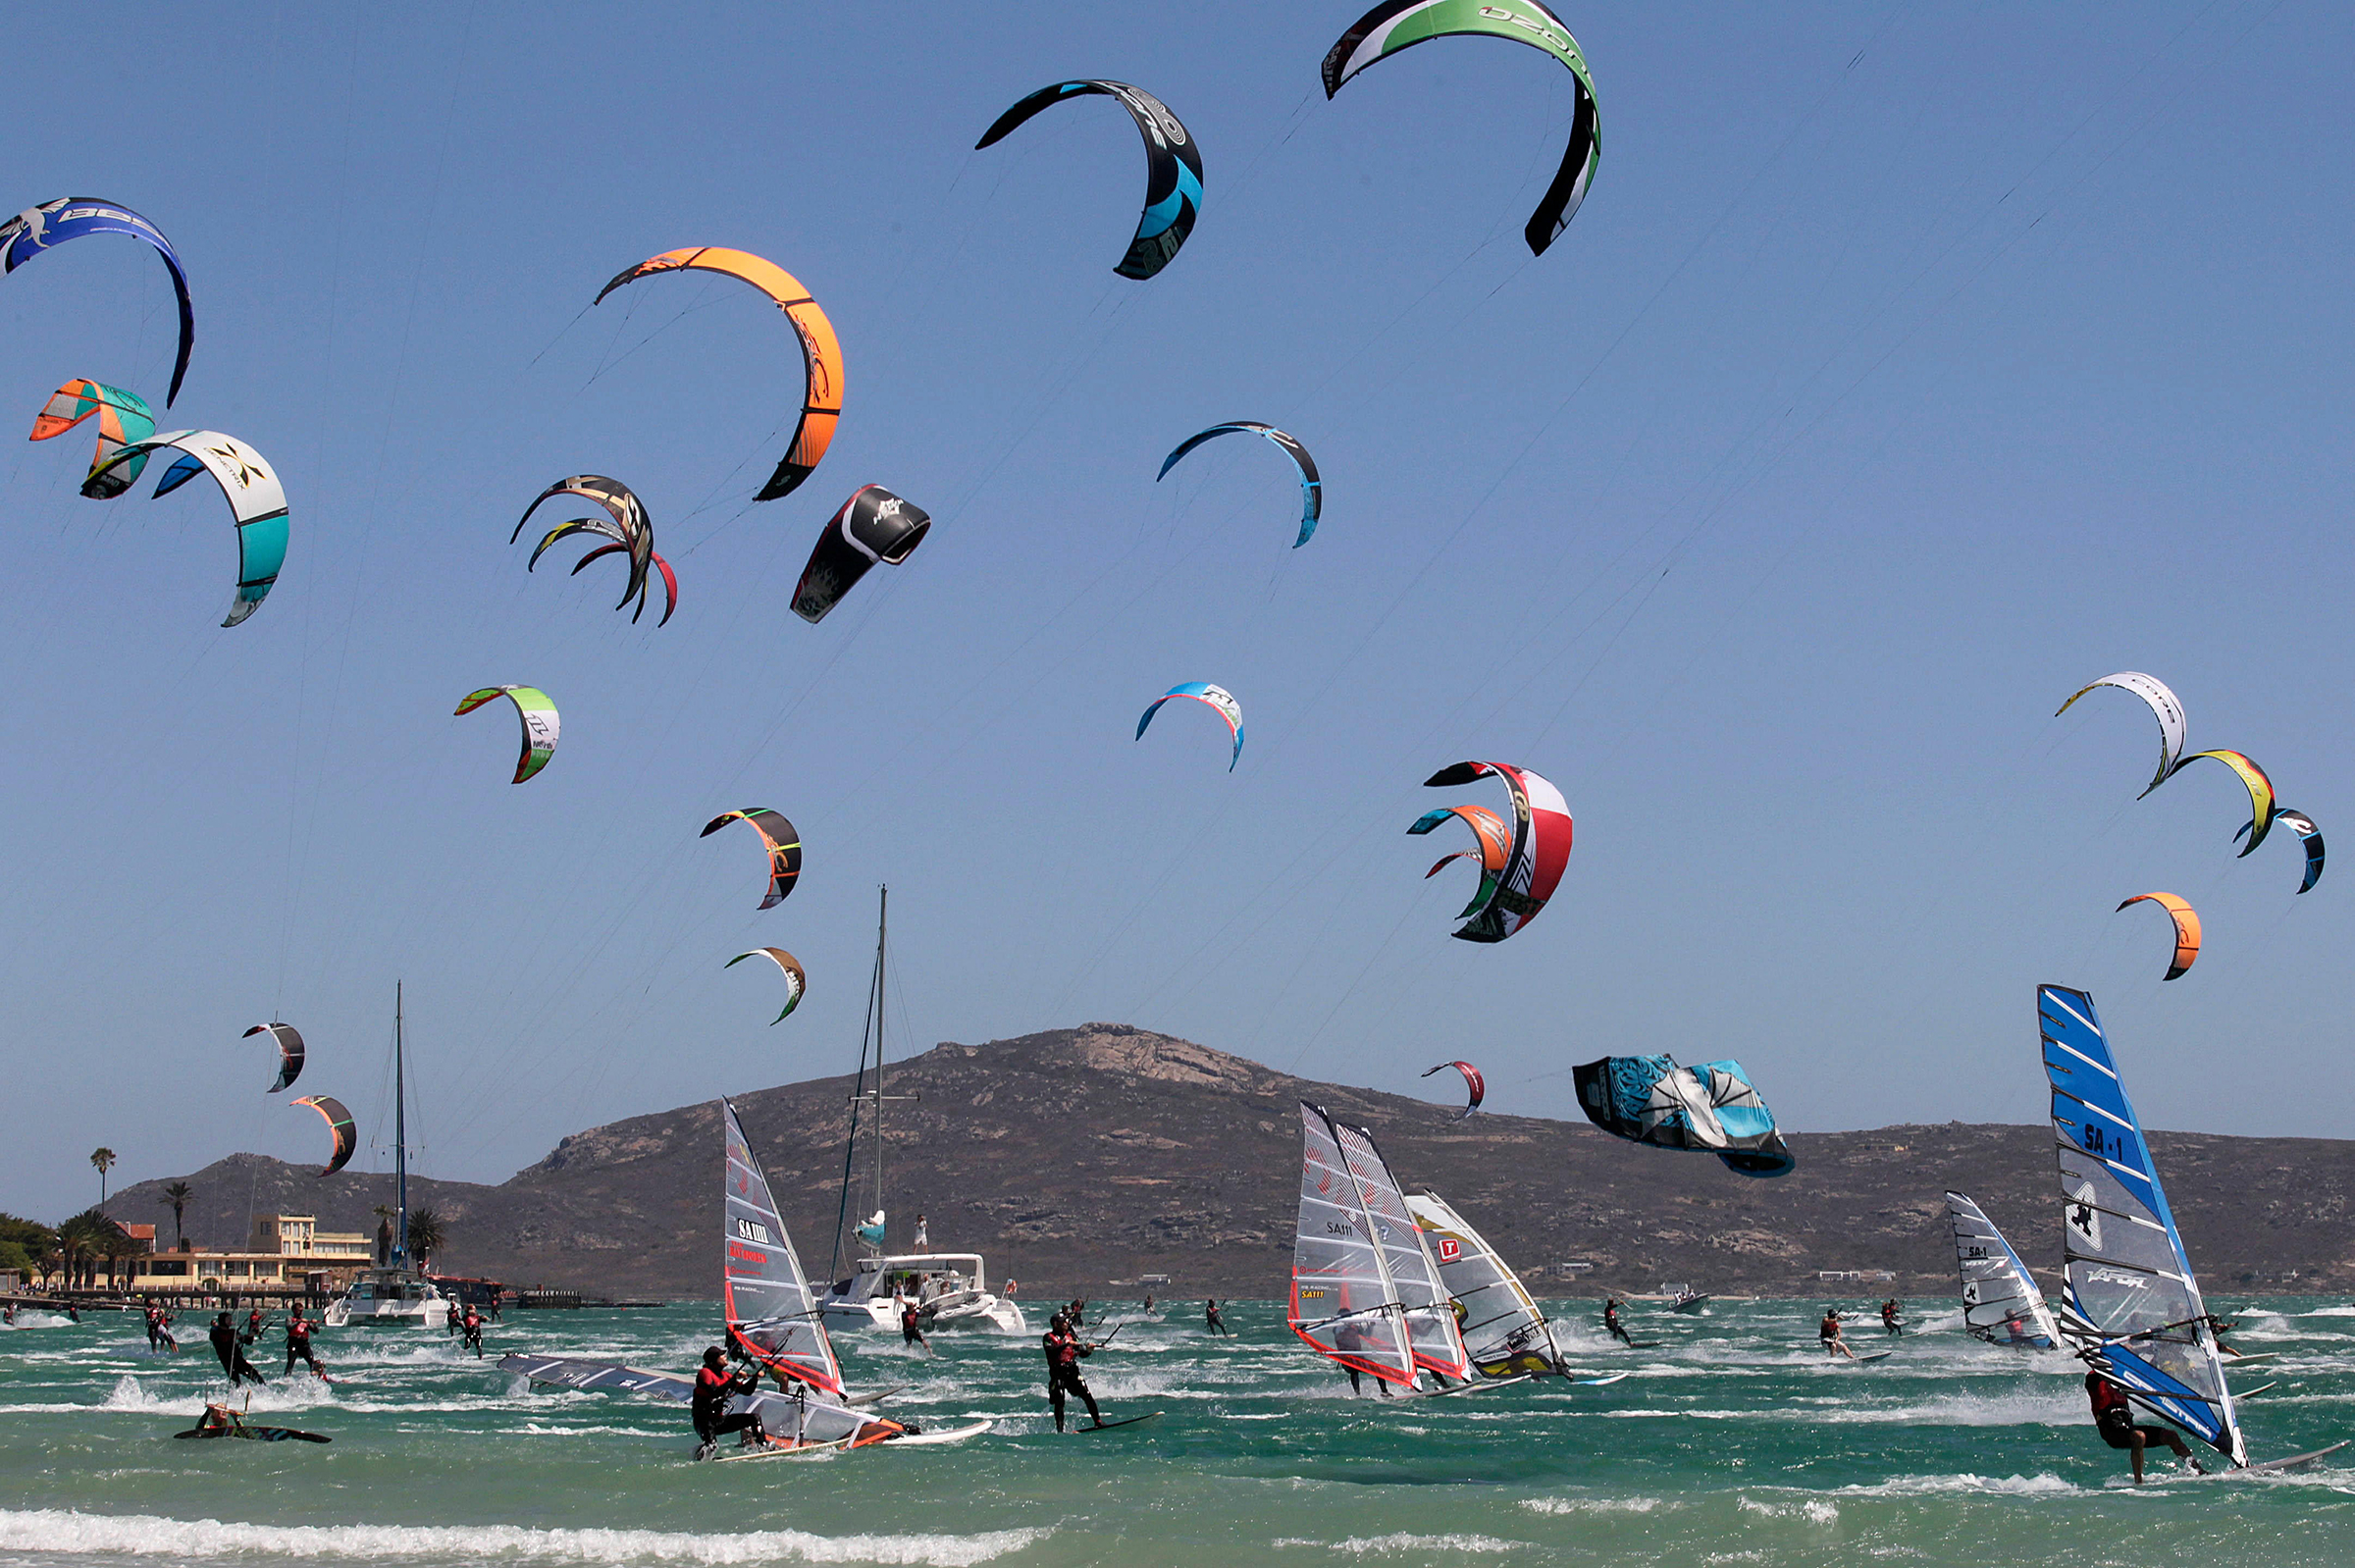 2-3 hours from Cape Town Windsurf and cand along the West Coast